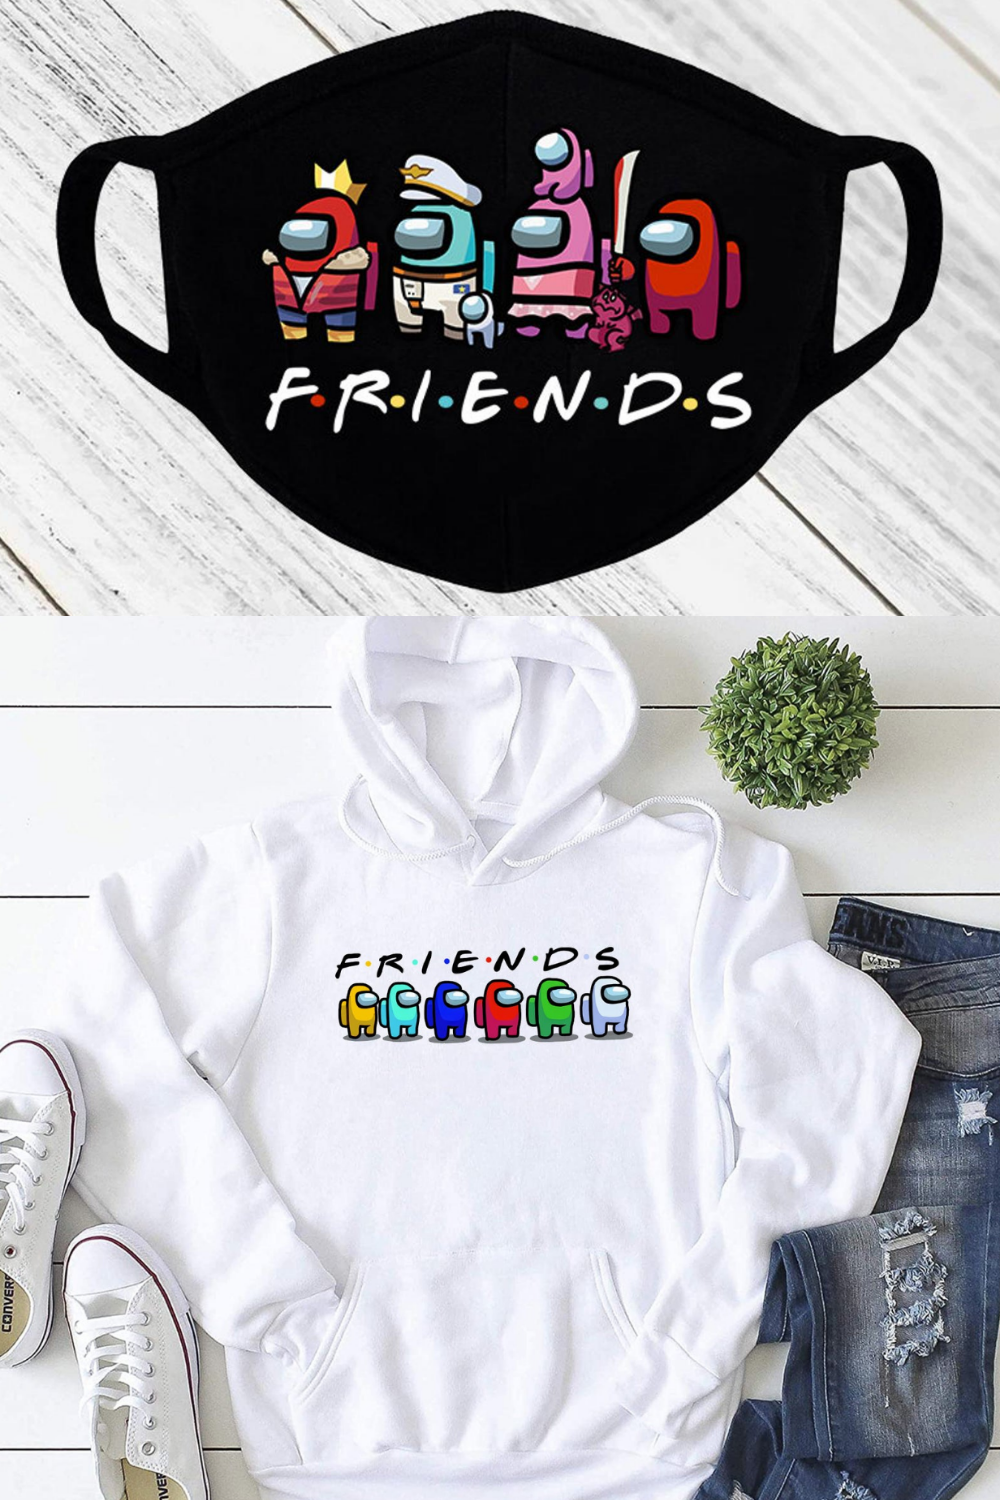 Among Us Game App Merch Gifts and Gift Ideas